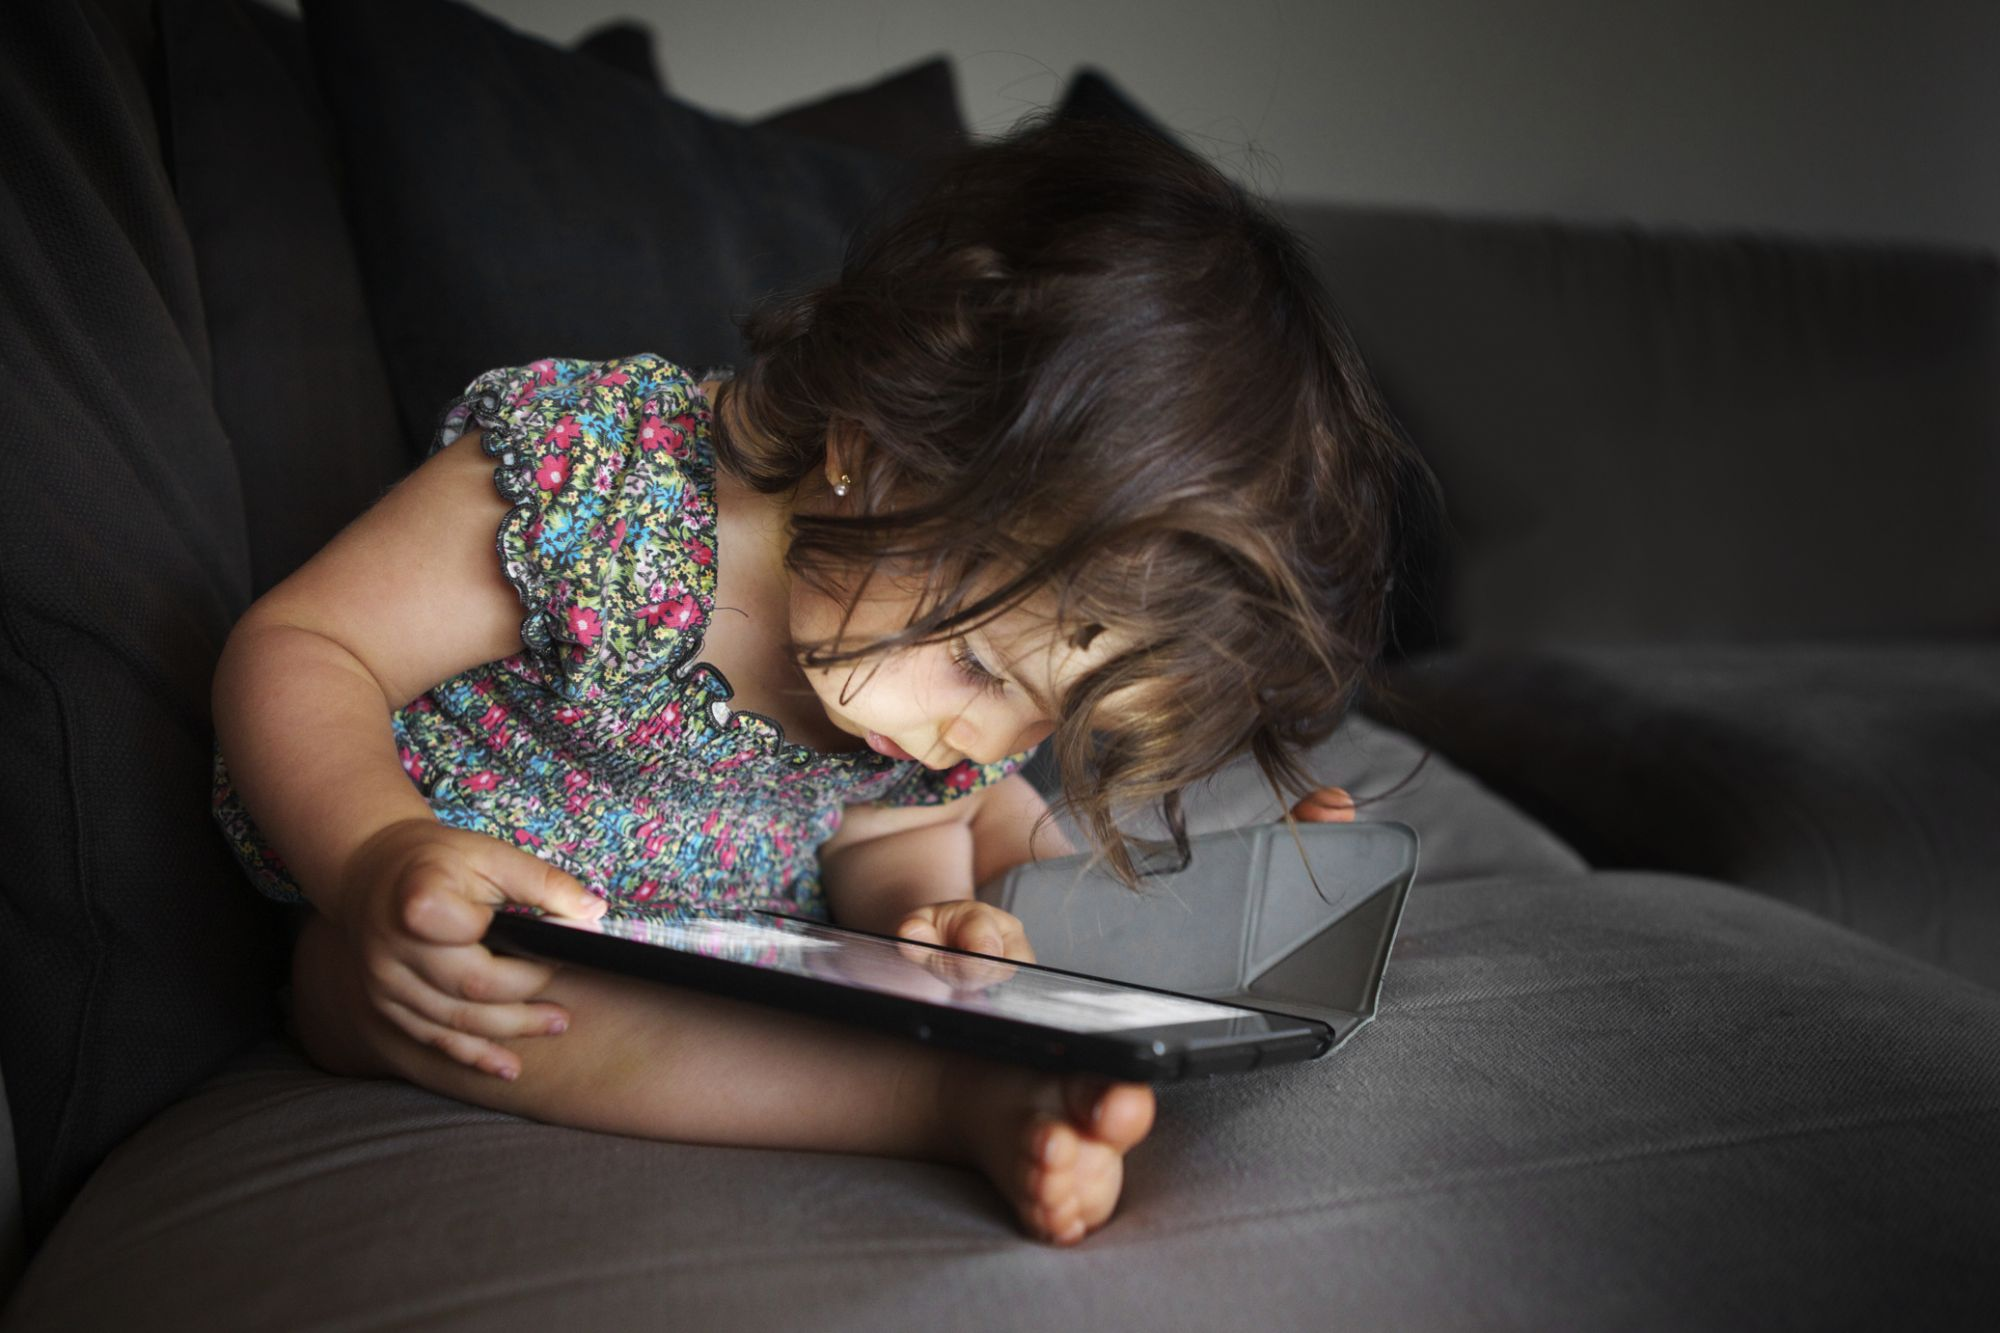 Nearly 24 Percent of Parents Are Buying Tablets for Their Preschoolers